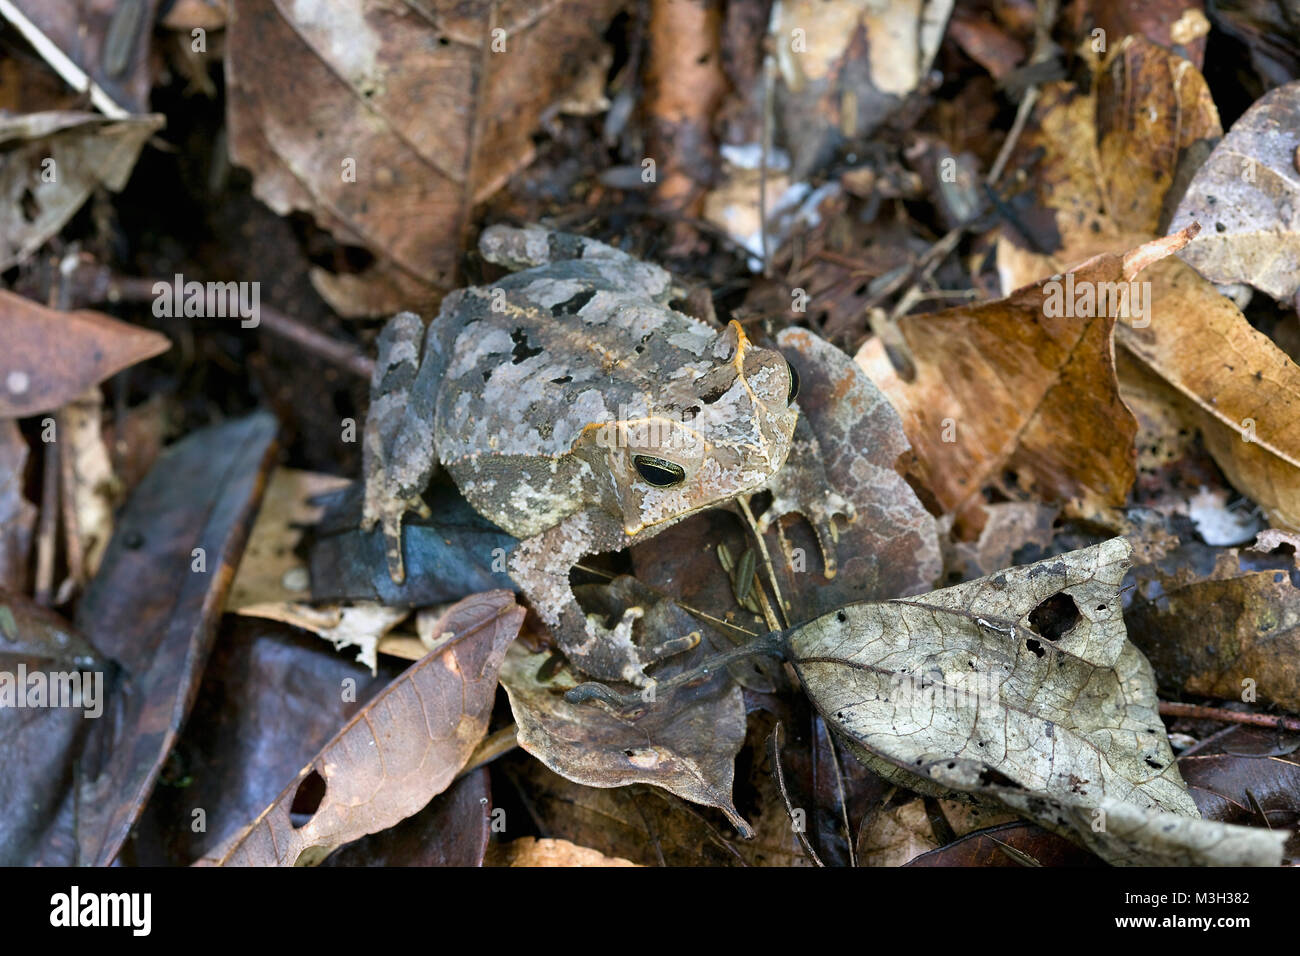 Suriname, Brownsweg, Brownsberg National Park. Horned toad. - Stock Image